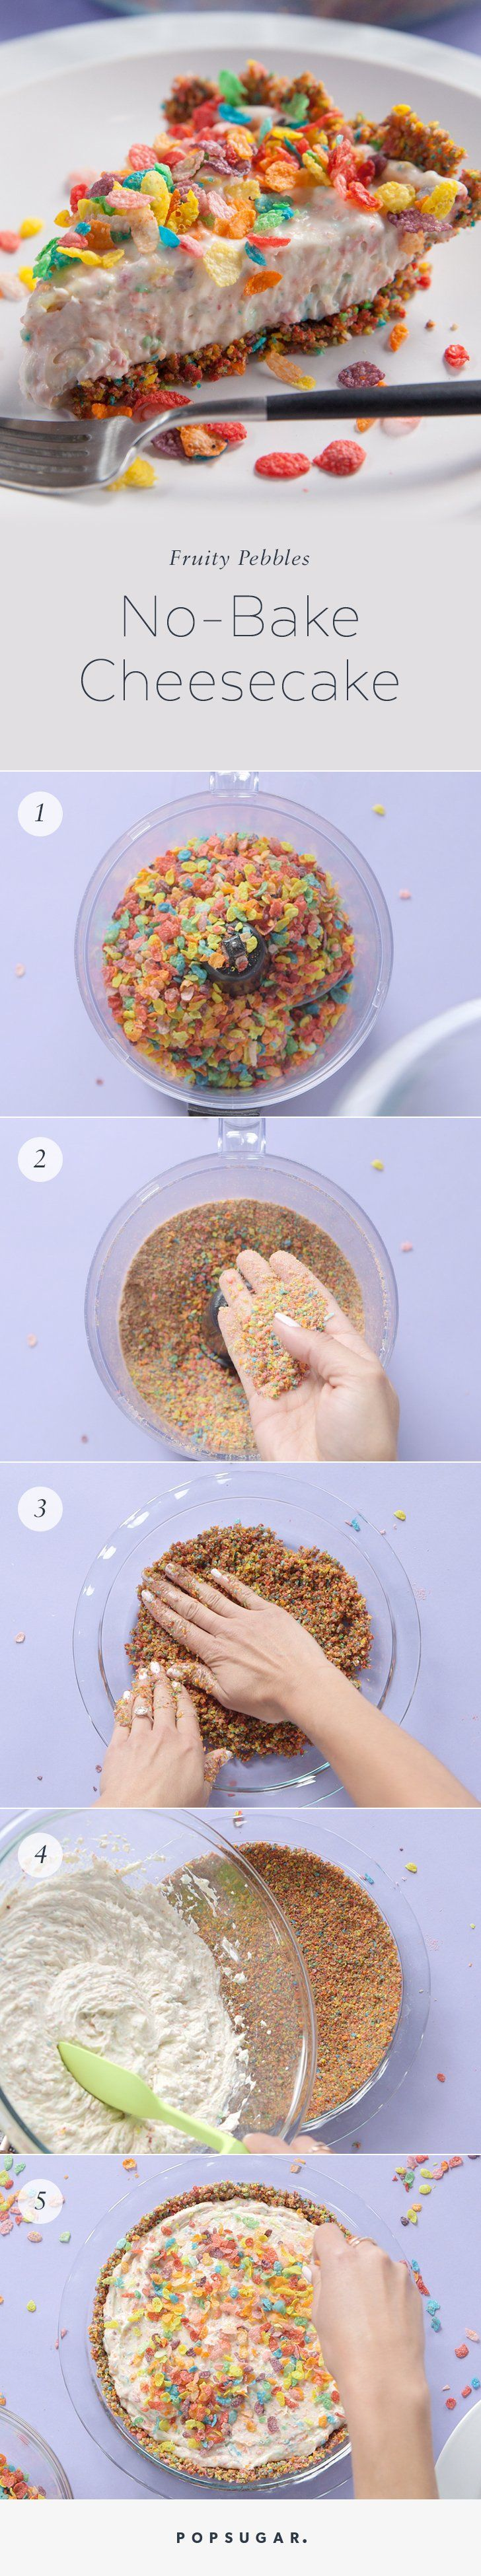 Combine your love of #FruityPebbles and #Cheesecake into one with this easy no-bake recipe